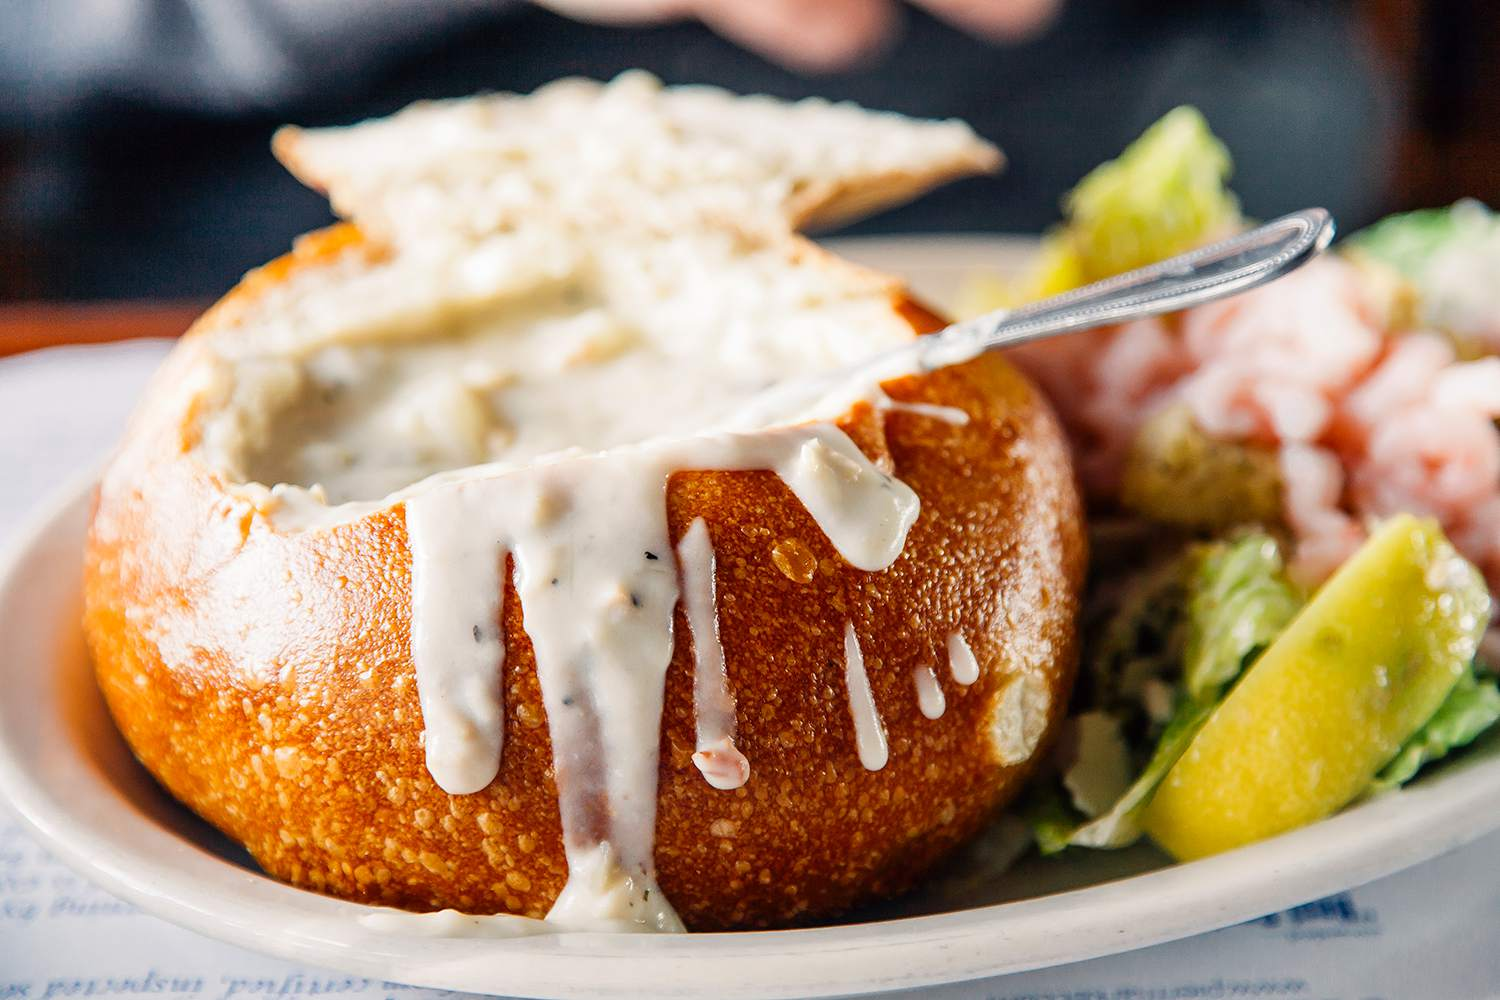 Clam chowder served in a bread bowl